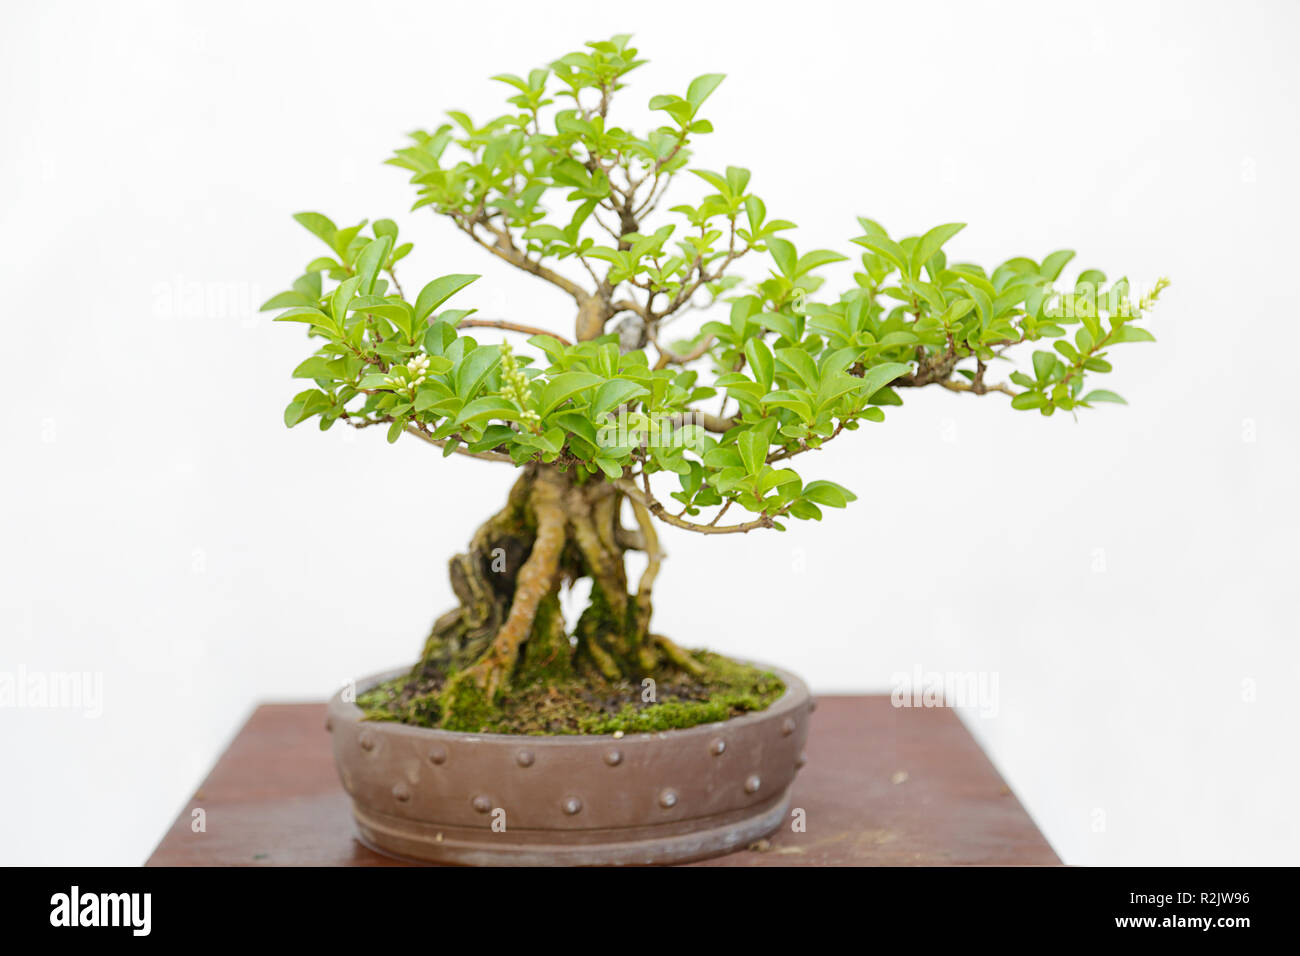 Chinese Privet High Resolution Stock Photography And Images Alamy